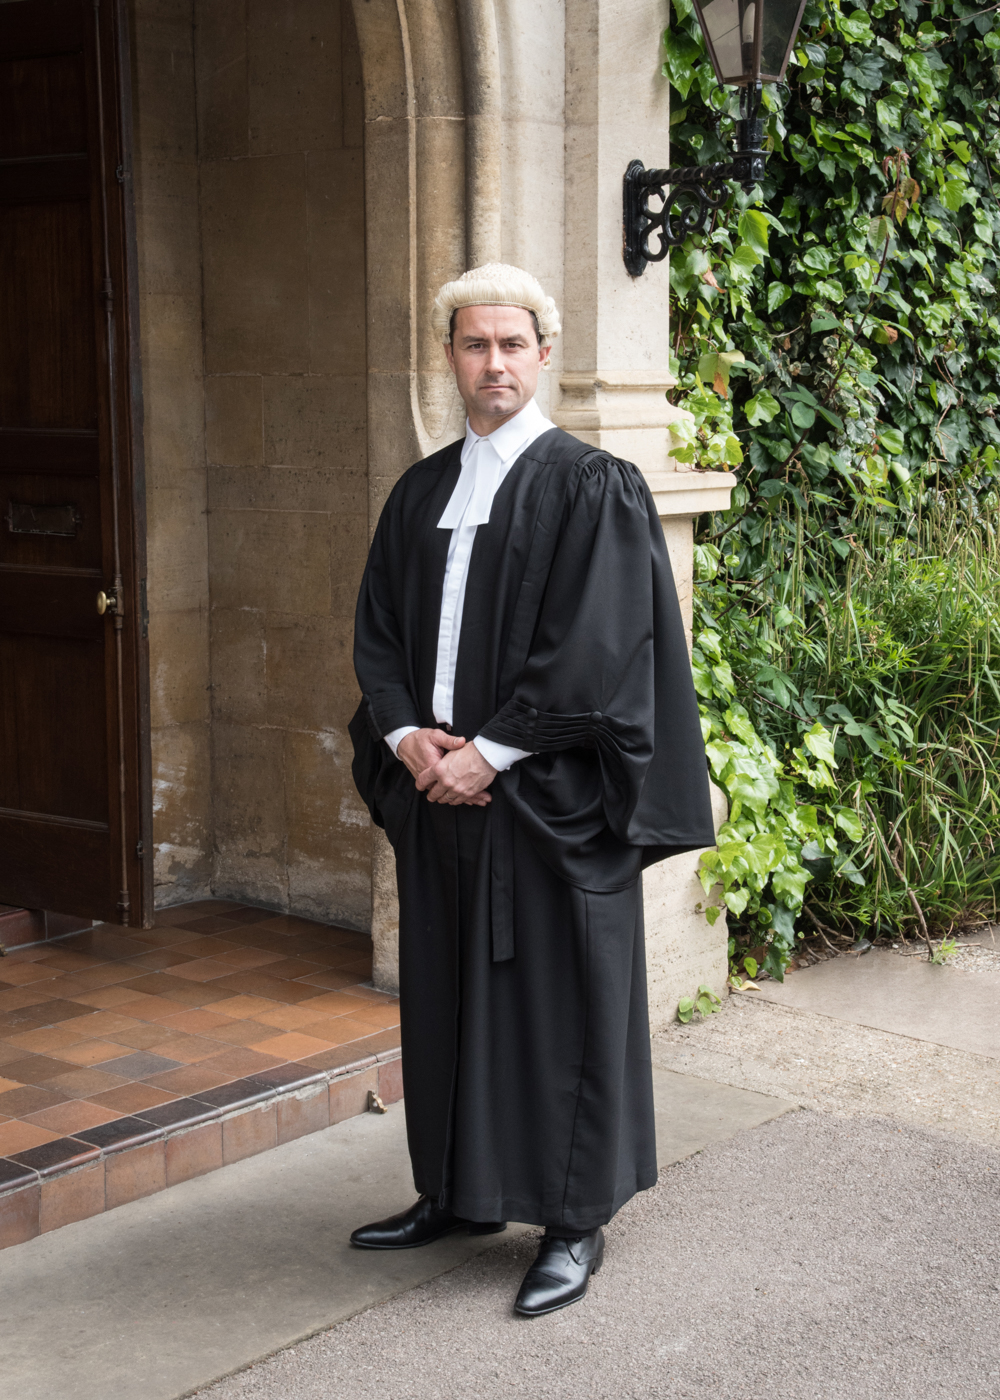 Barristers Gown, Wig and Band Set - Graduation Gowns in Europe with ...